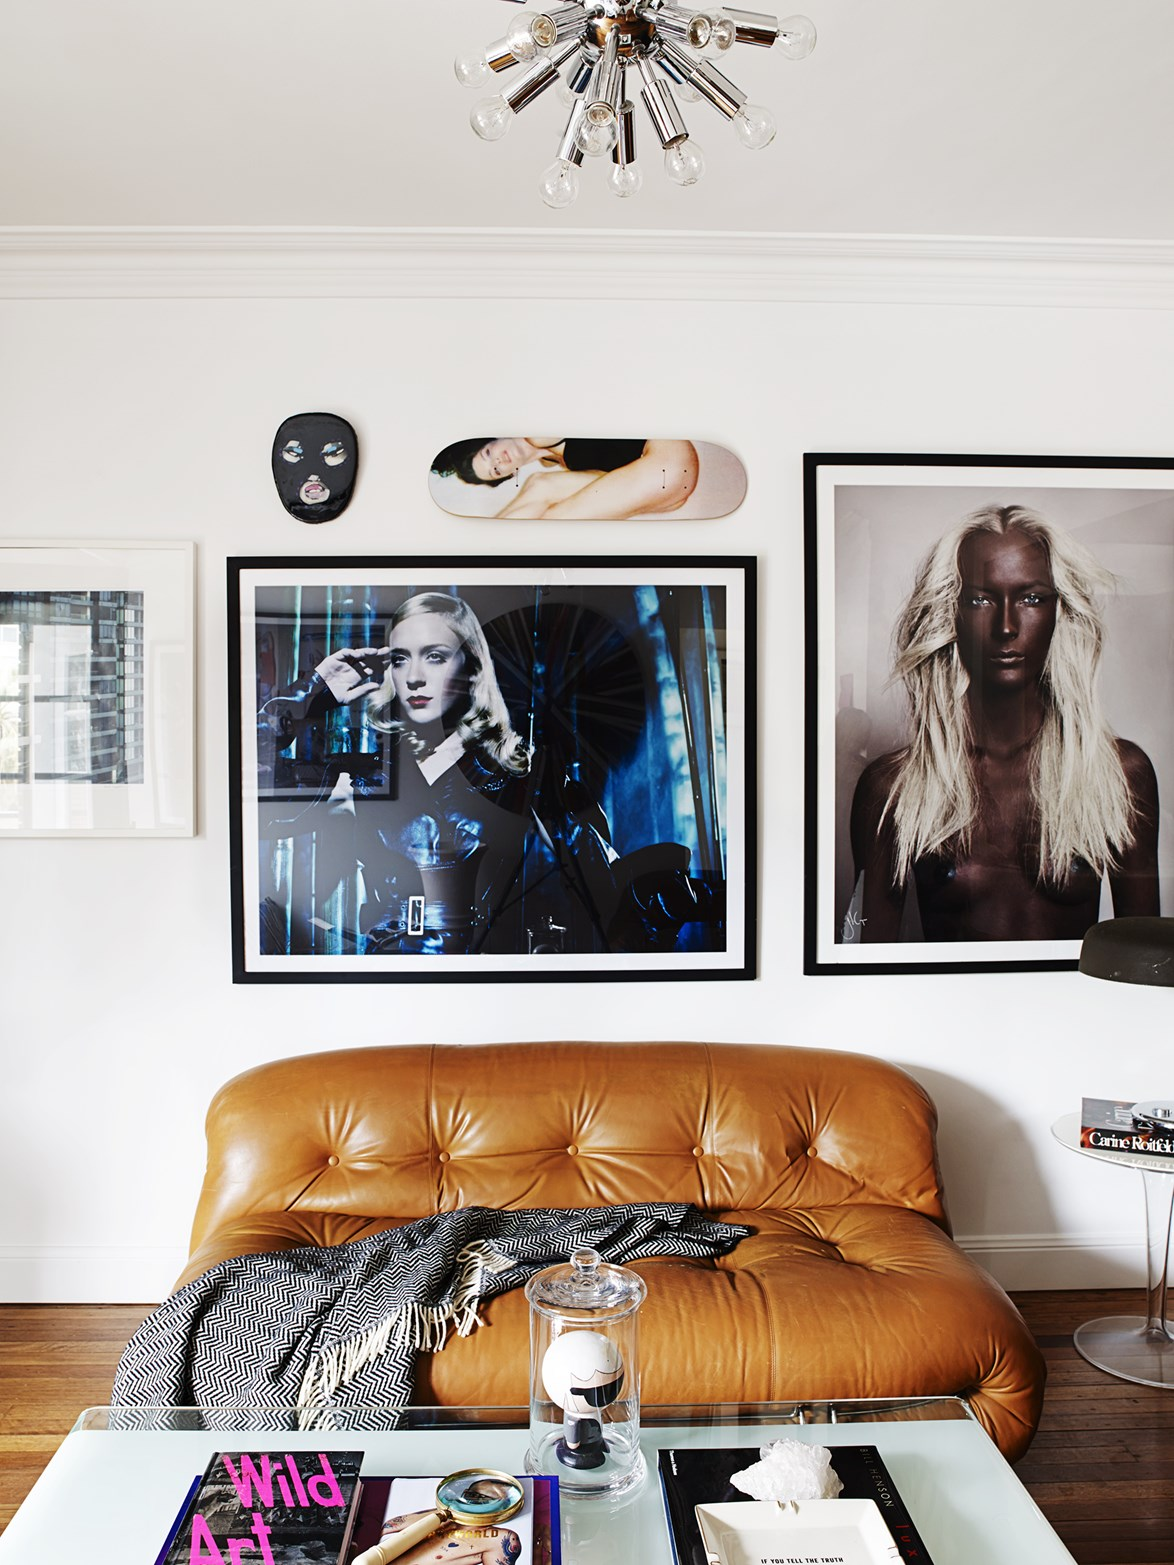 "Interior designer Dina Broadhurst has transformed an old two-bedroom [Art Deco apartment](https://www.homestolove.com.au/gallery-dinas-art-deco-sydney-apartment-reno-1497|target=""_blank"") into a cosy home with an artistic edge. Here, a Daniela Federici photograph of actress Chloë Sevigny, a photograph by Justin Cooper and other striking objets d'art hang above a vintage Soriana sofa."